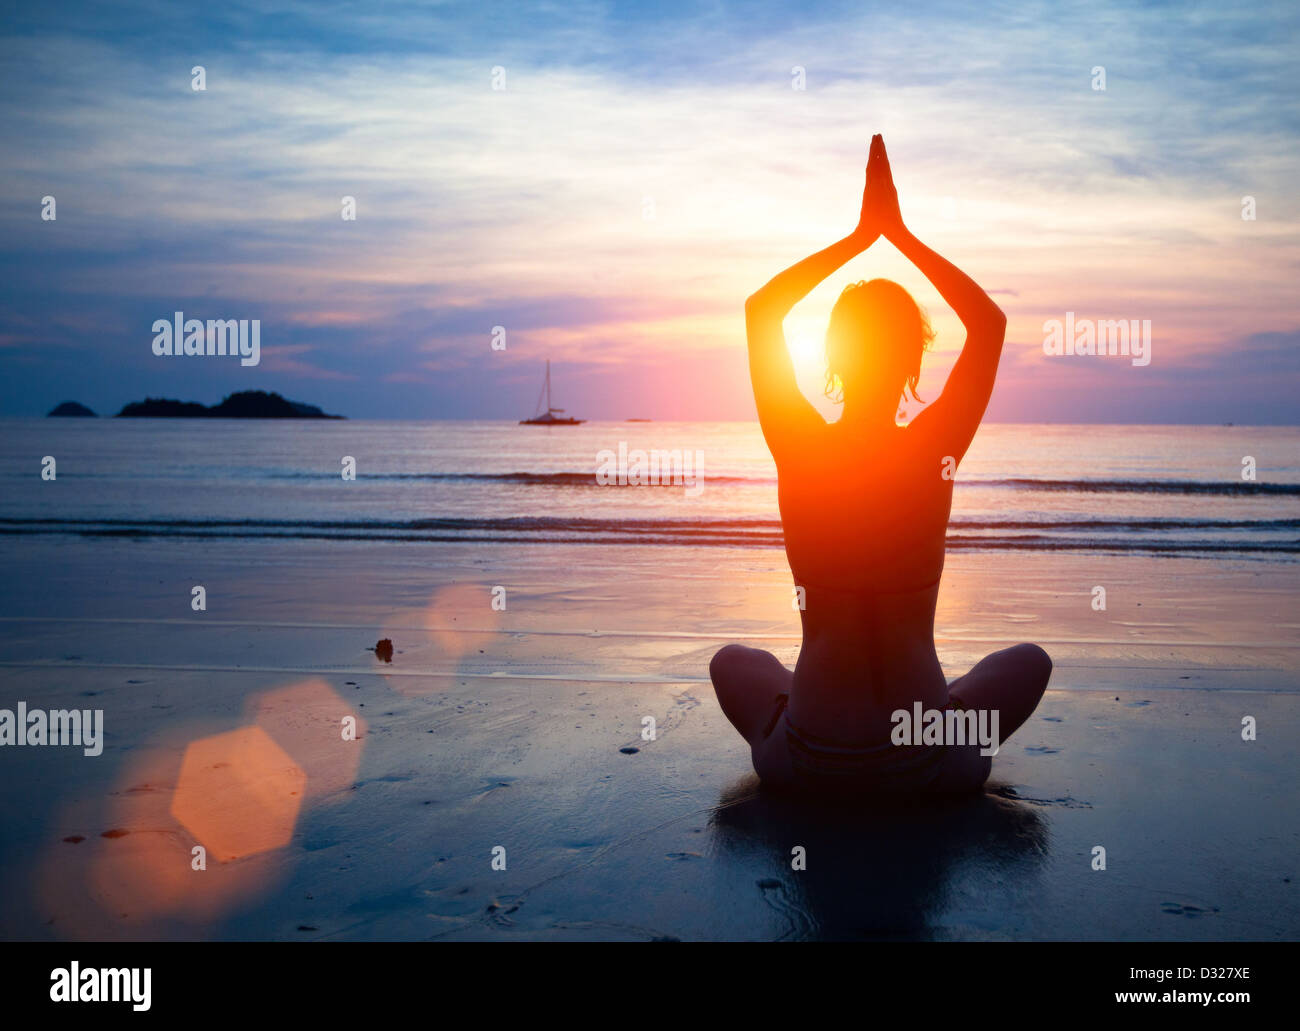 Silhouette young woman practicing yoga on the beach at sunset. - Stock Image